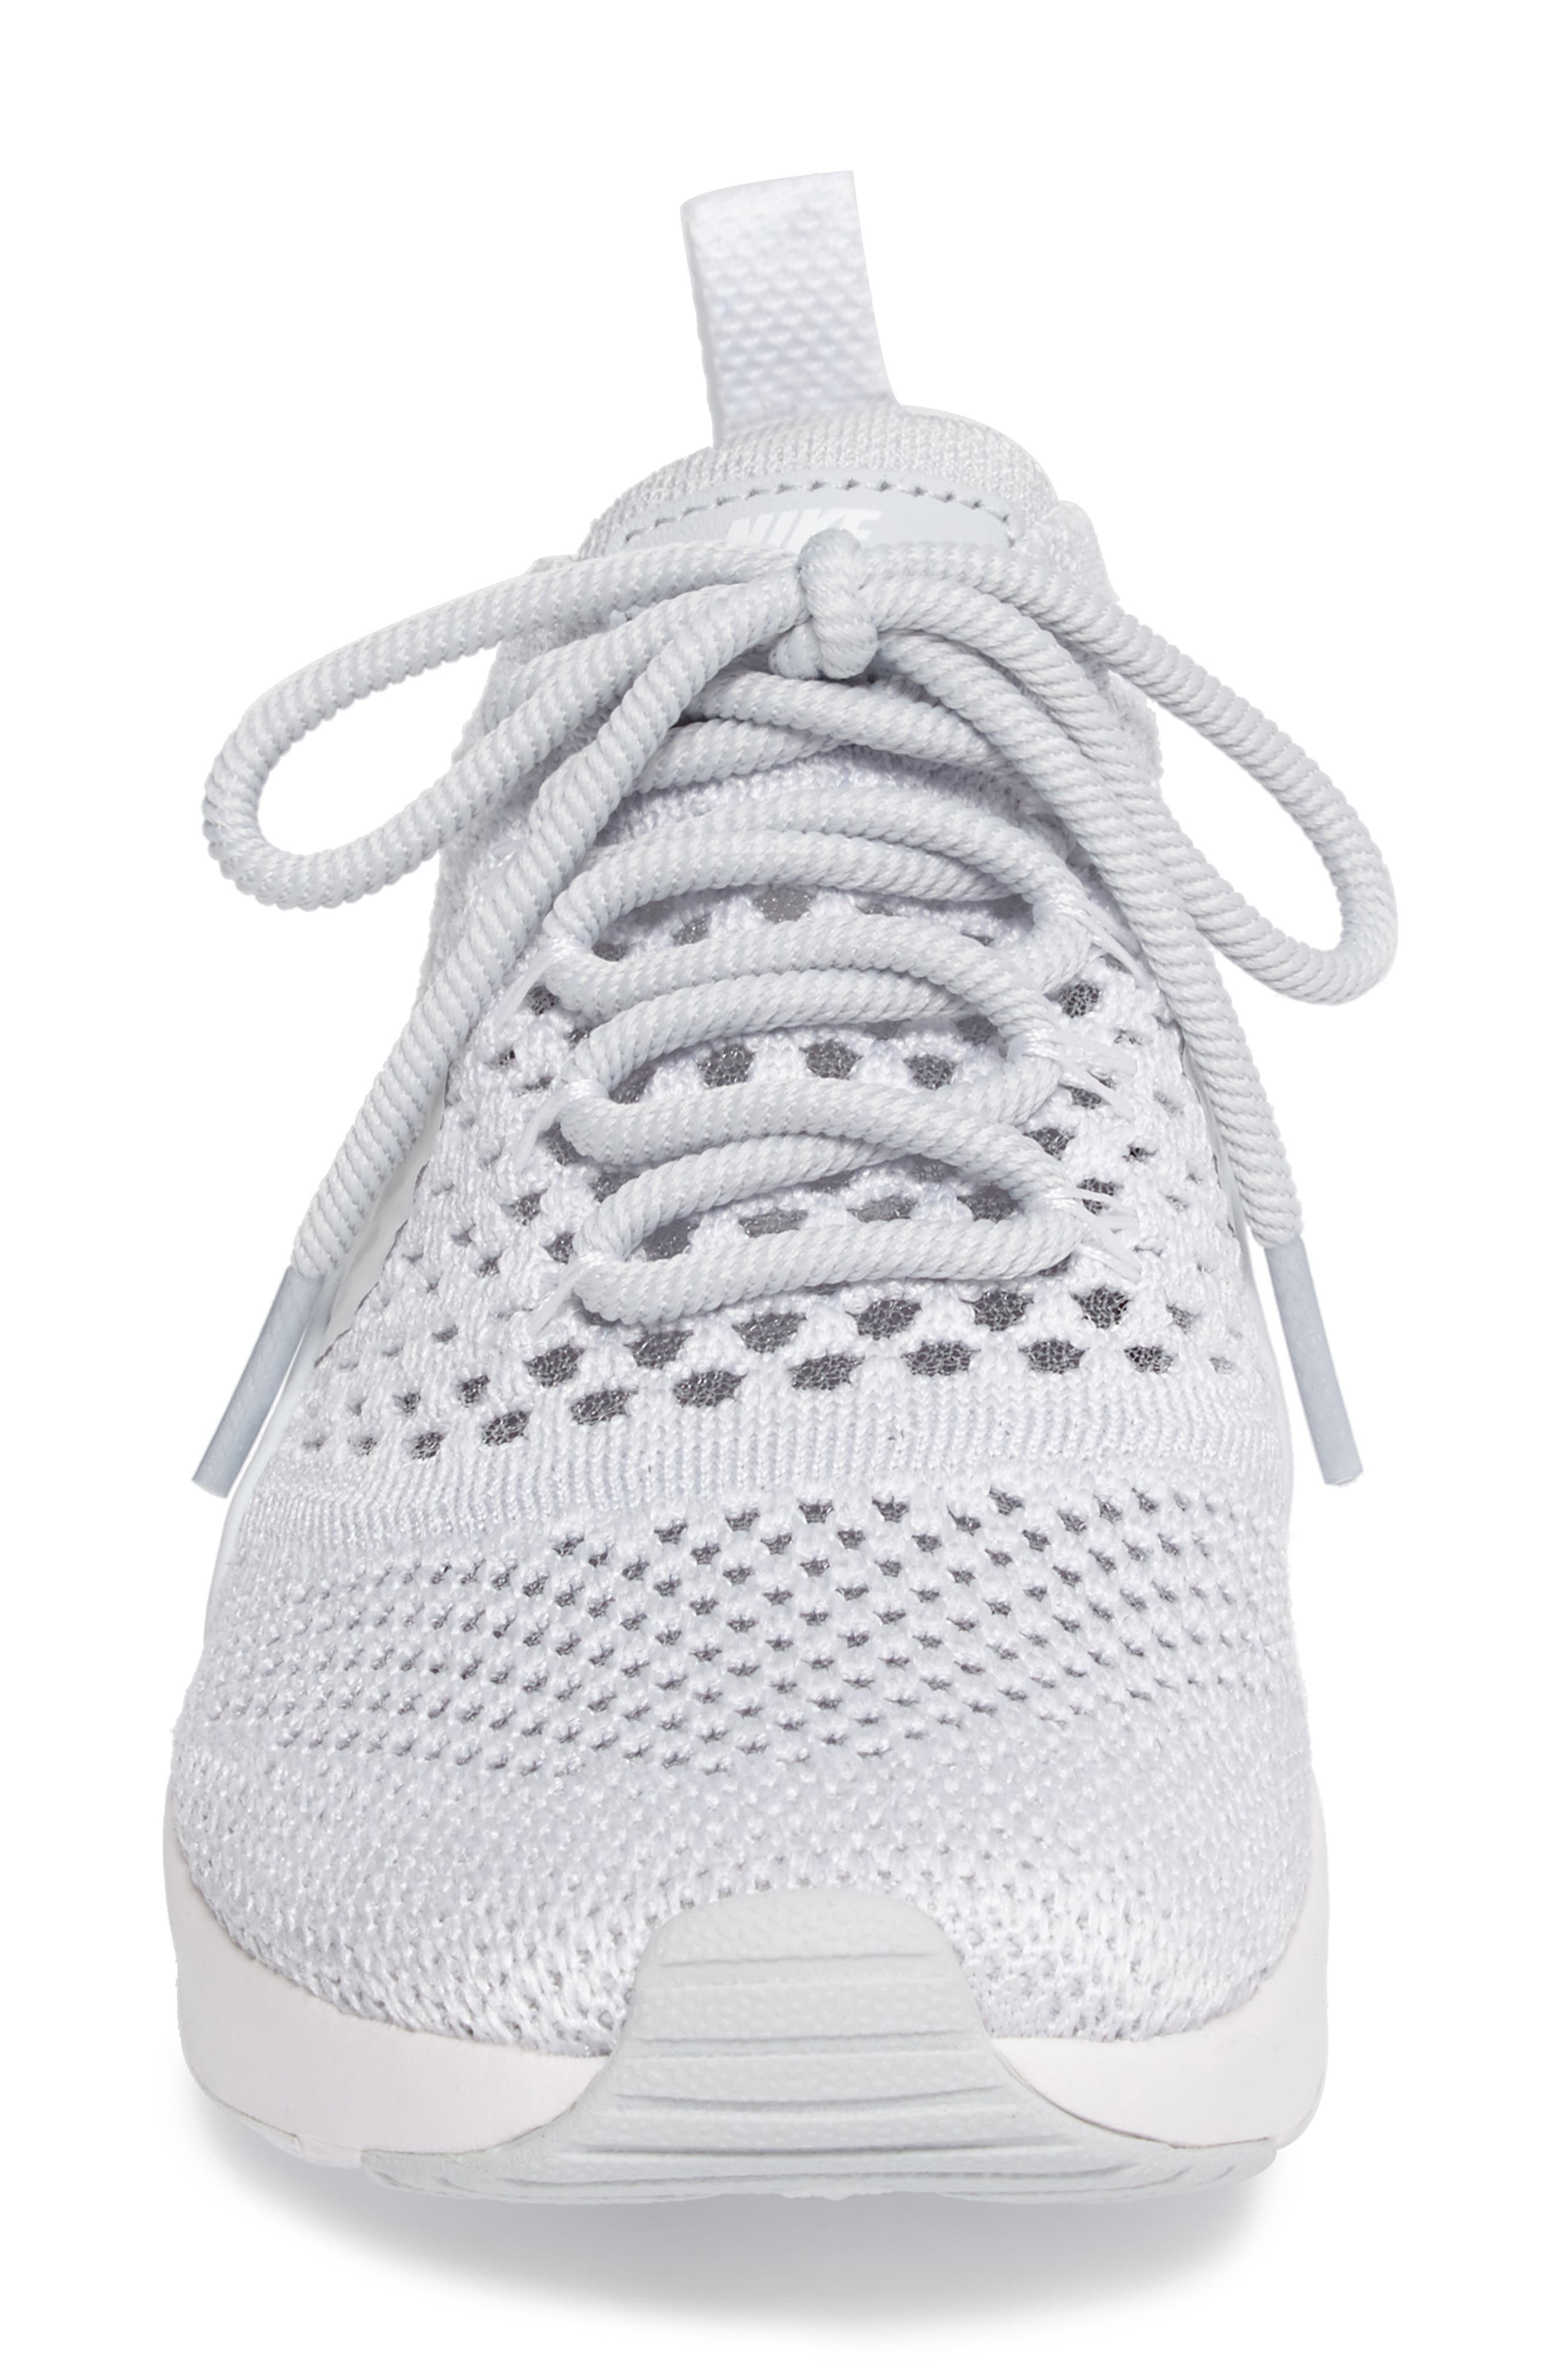 Air Max Thea Ultra Flyknit Sneaker,                             Alternate thumbnail 4, color,                             Pure Platinum/ White